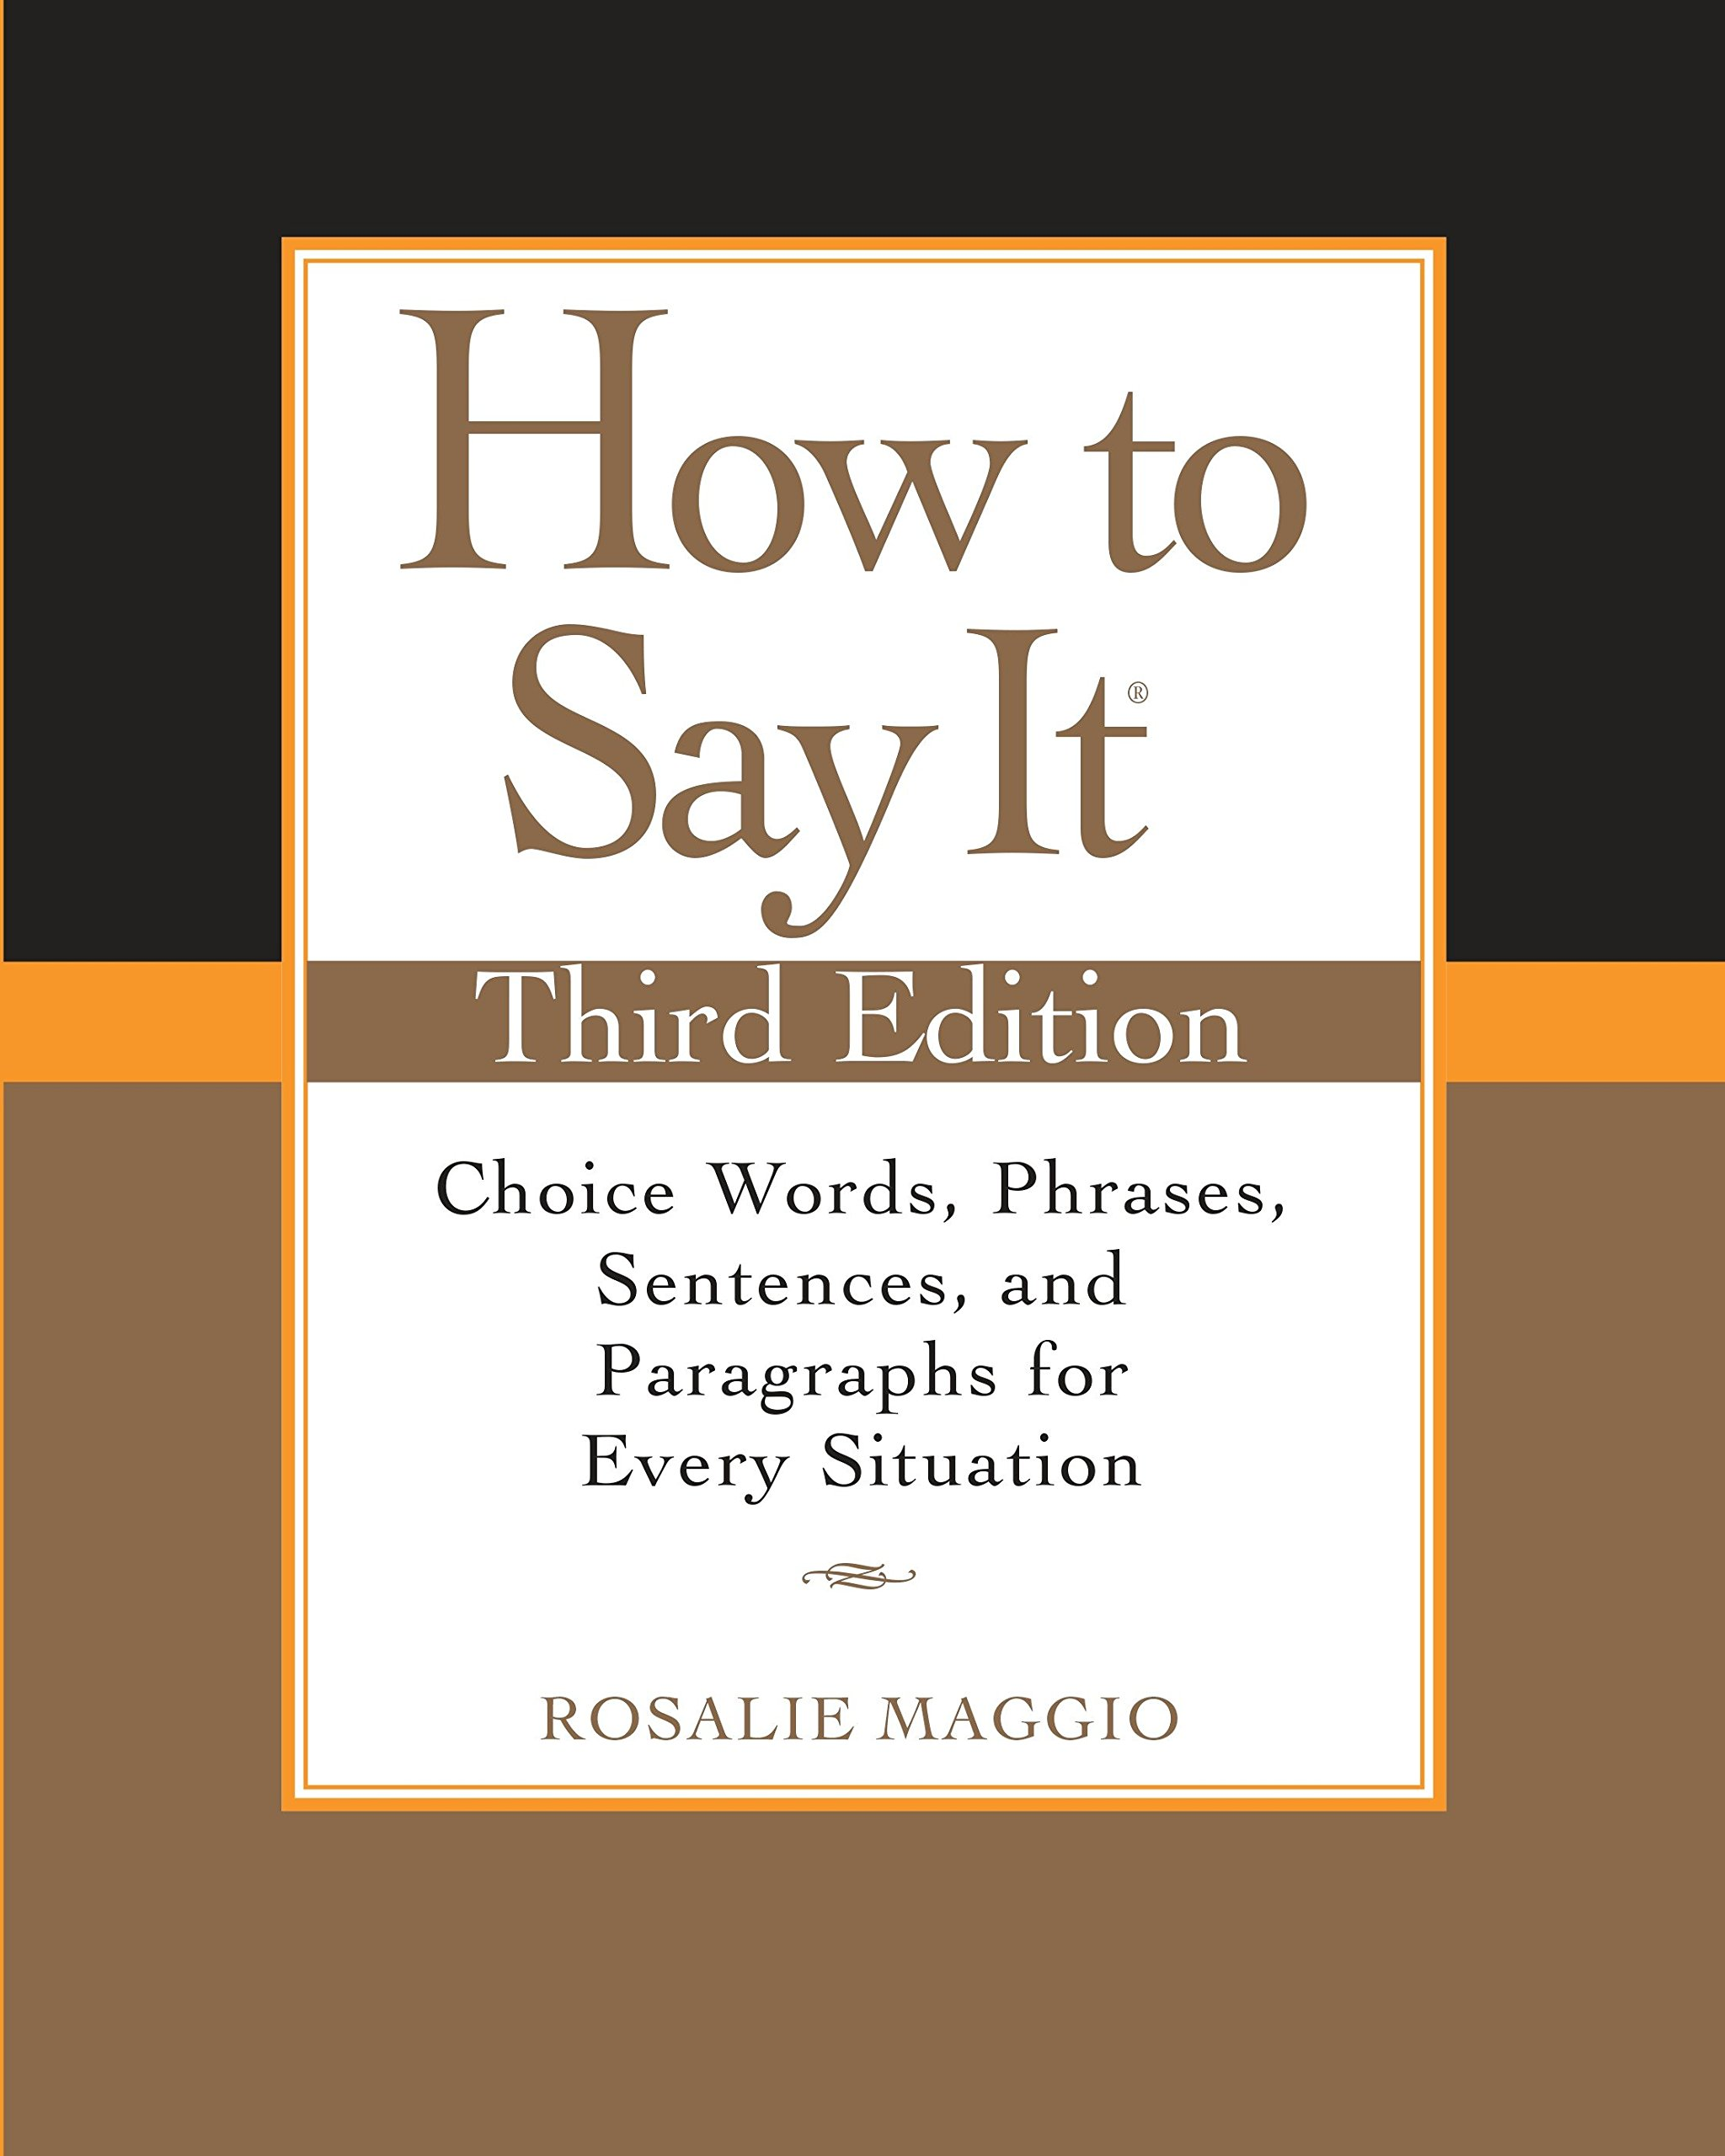 How to Say It, Third Edition: Choice Words, Phrases